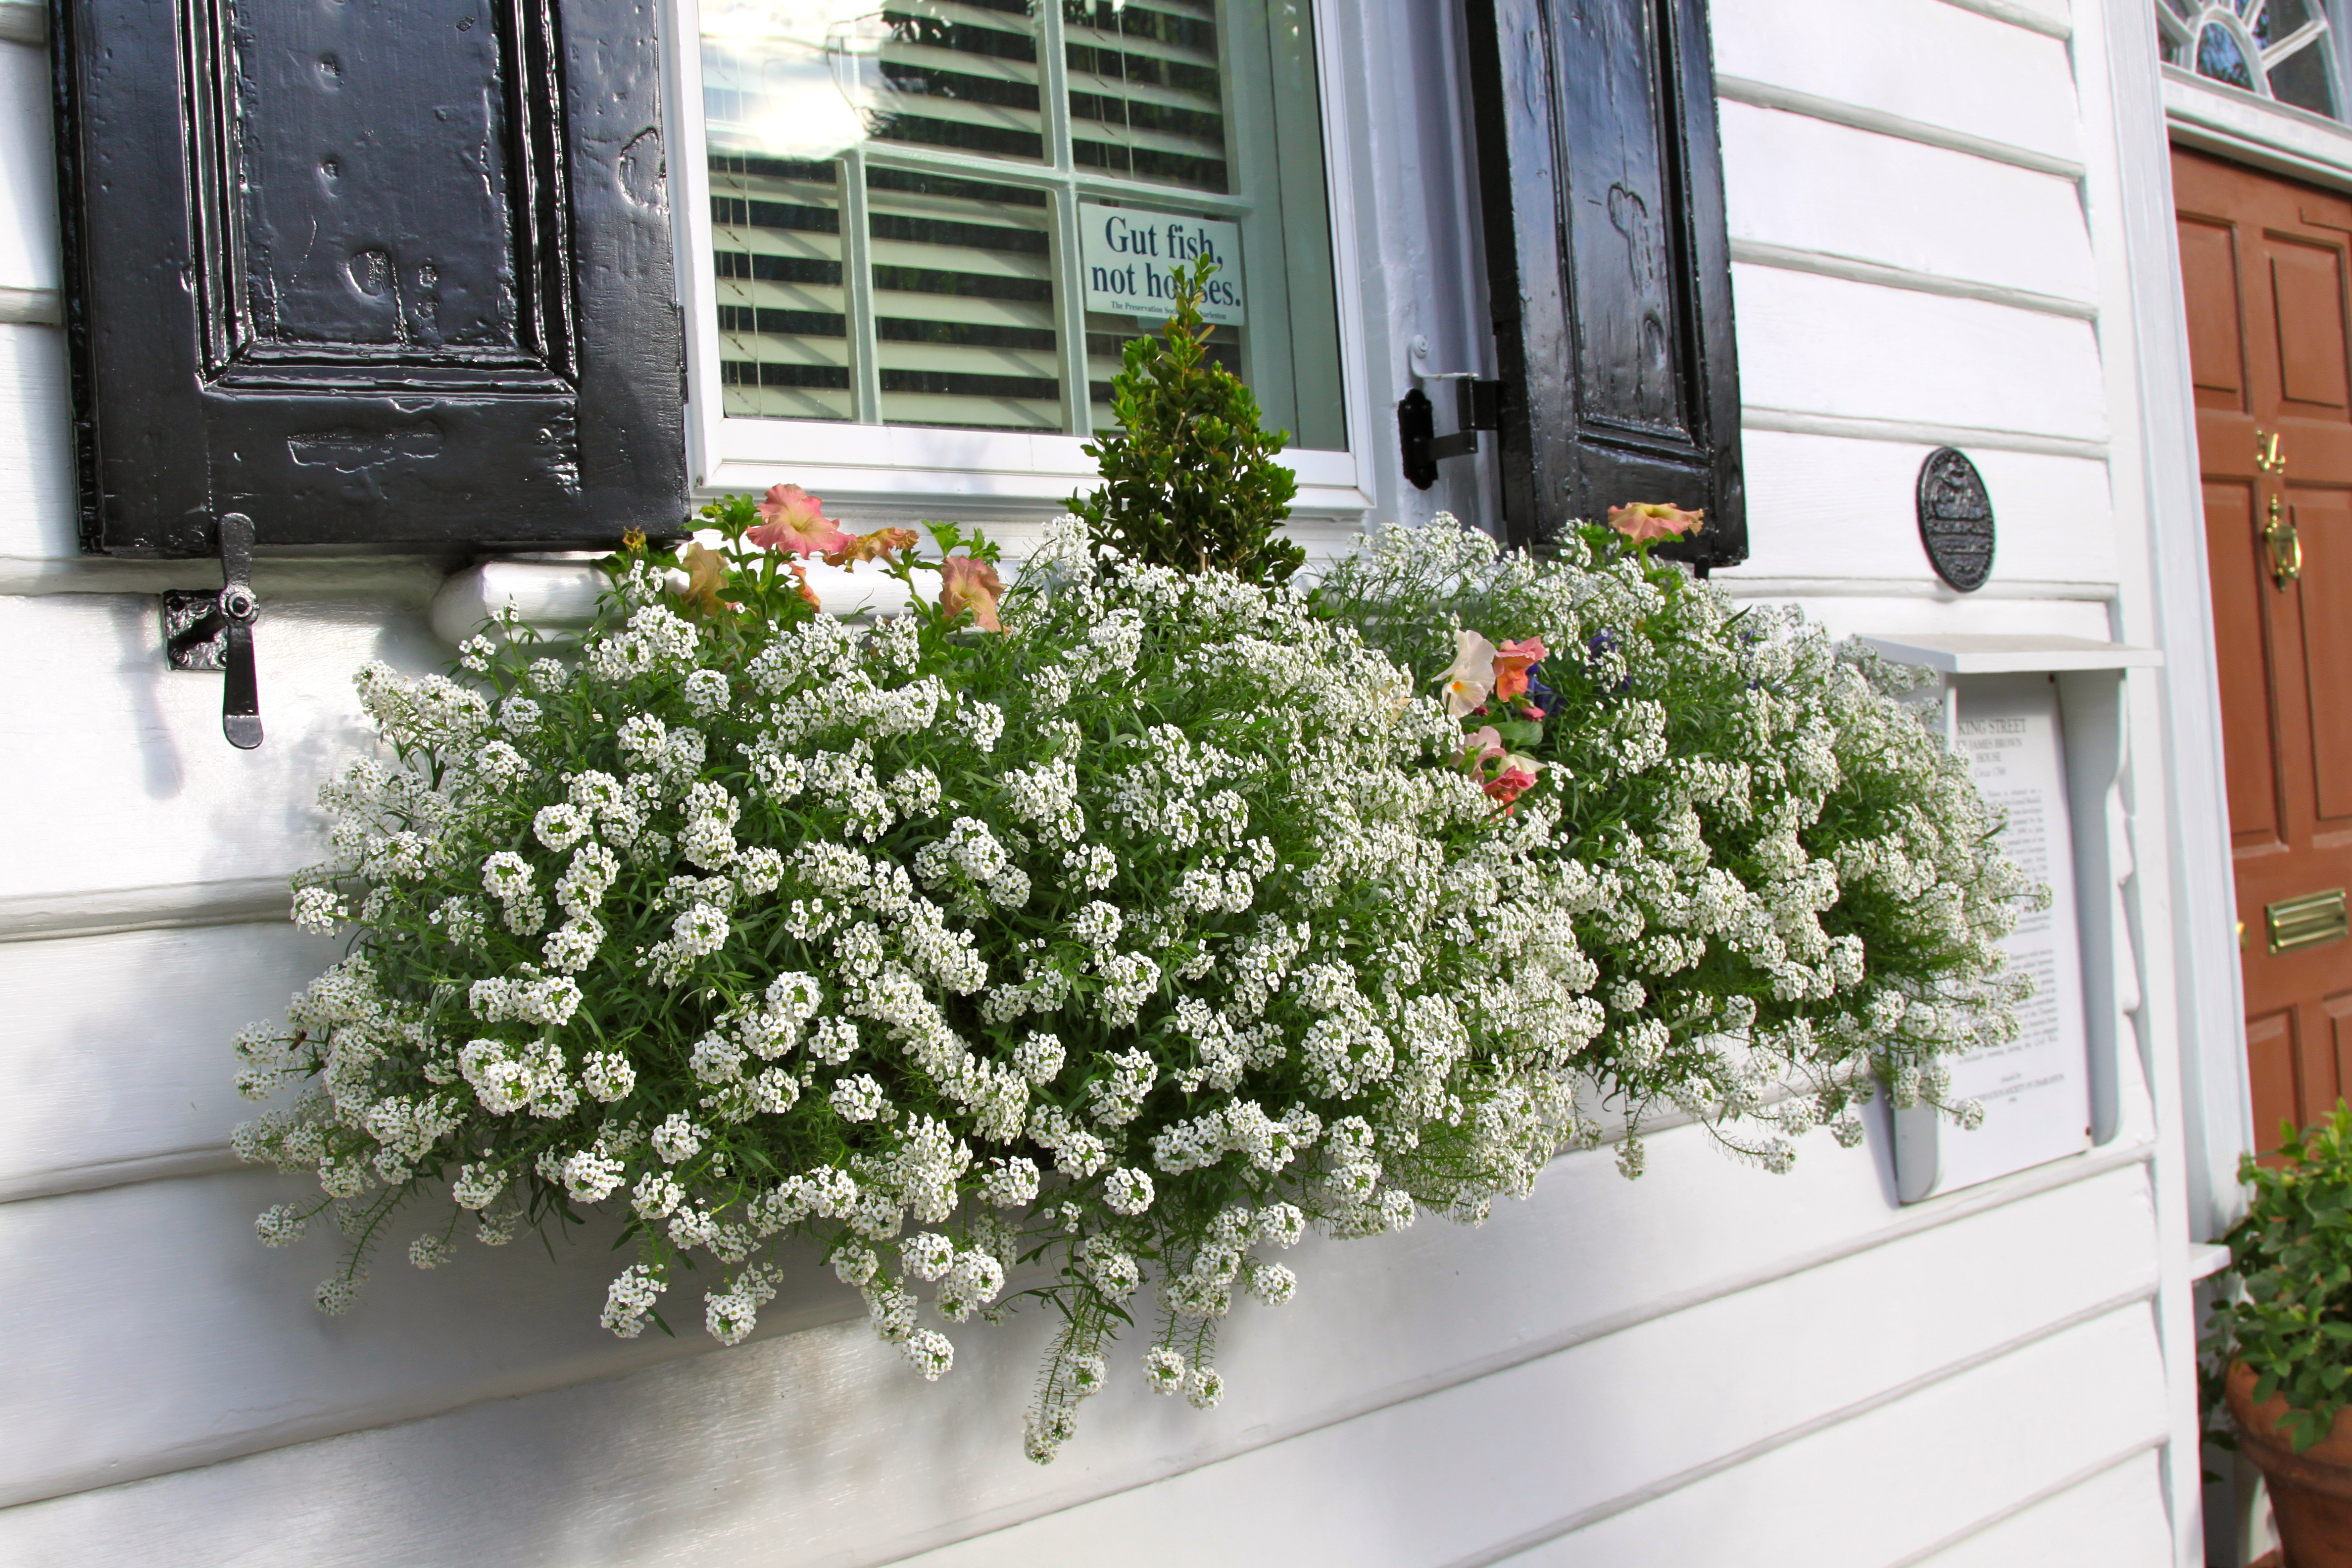 Inspiration for Spring 2012 My Latest Window Box s from